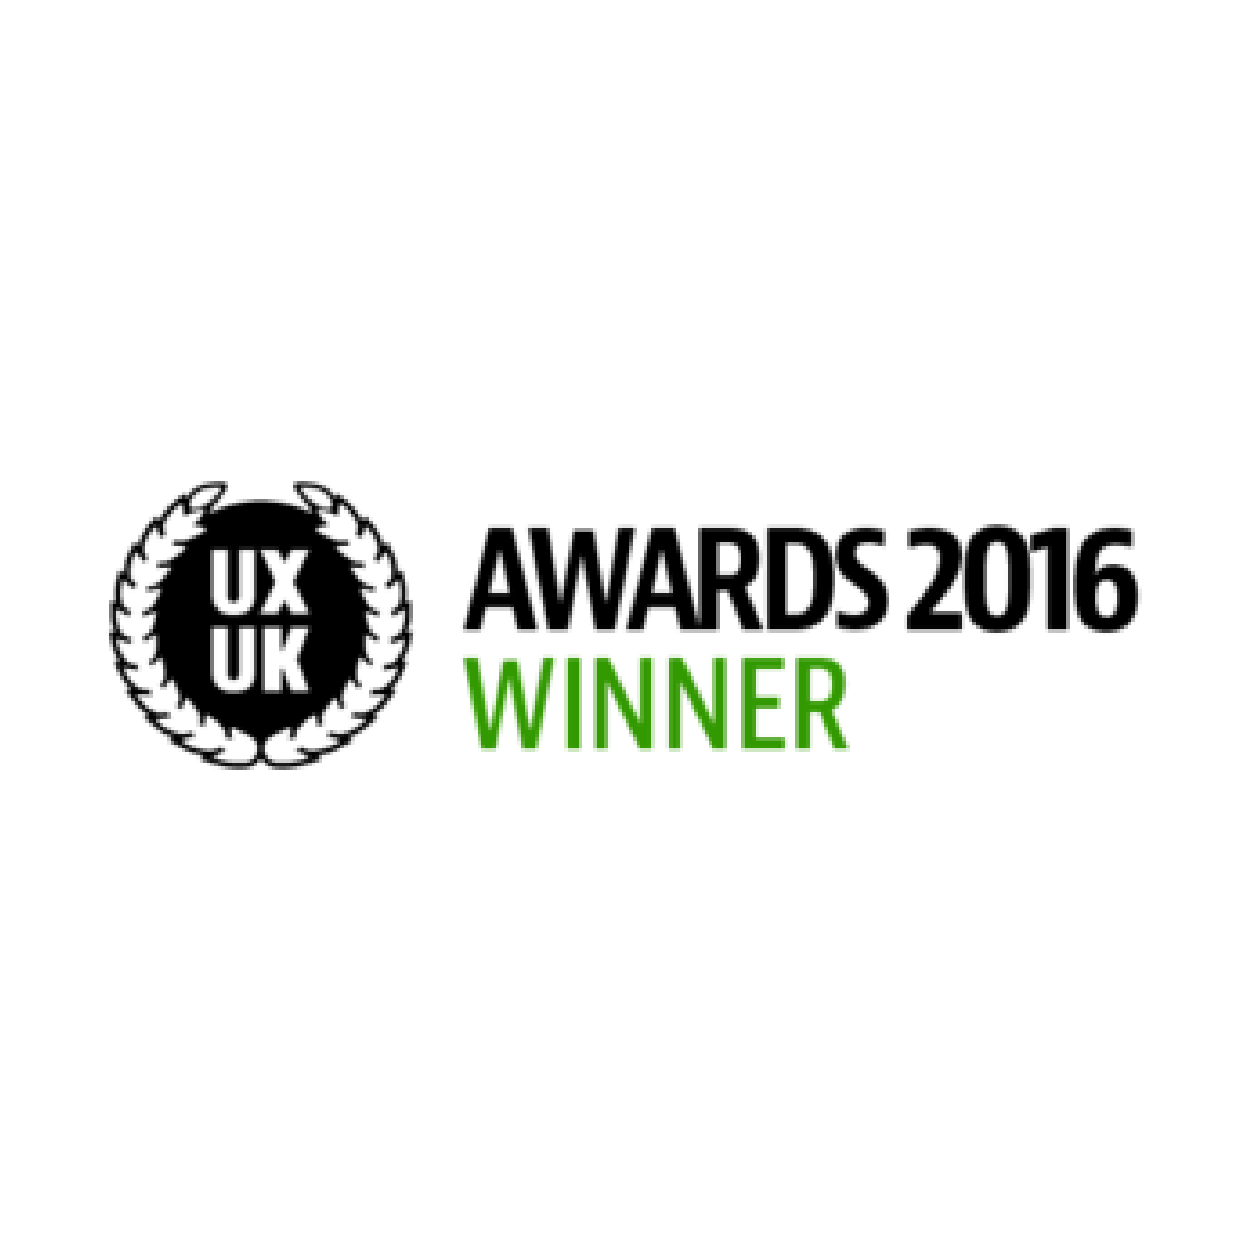 UXUK awards 2016 winner badge